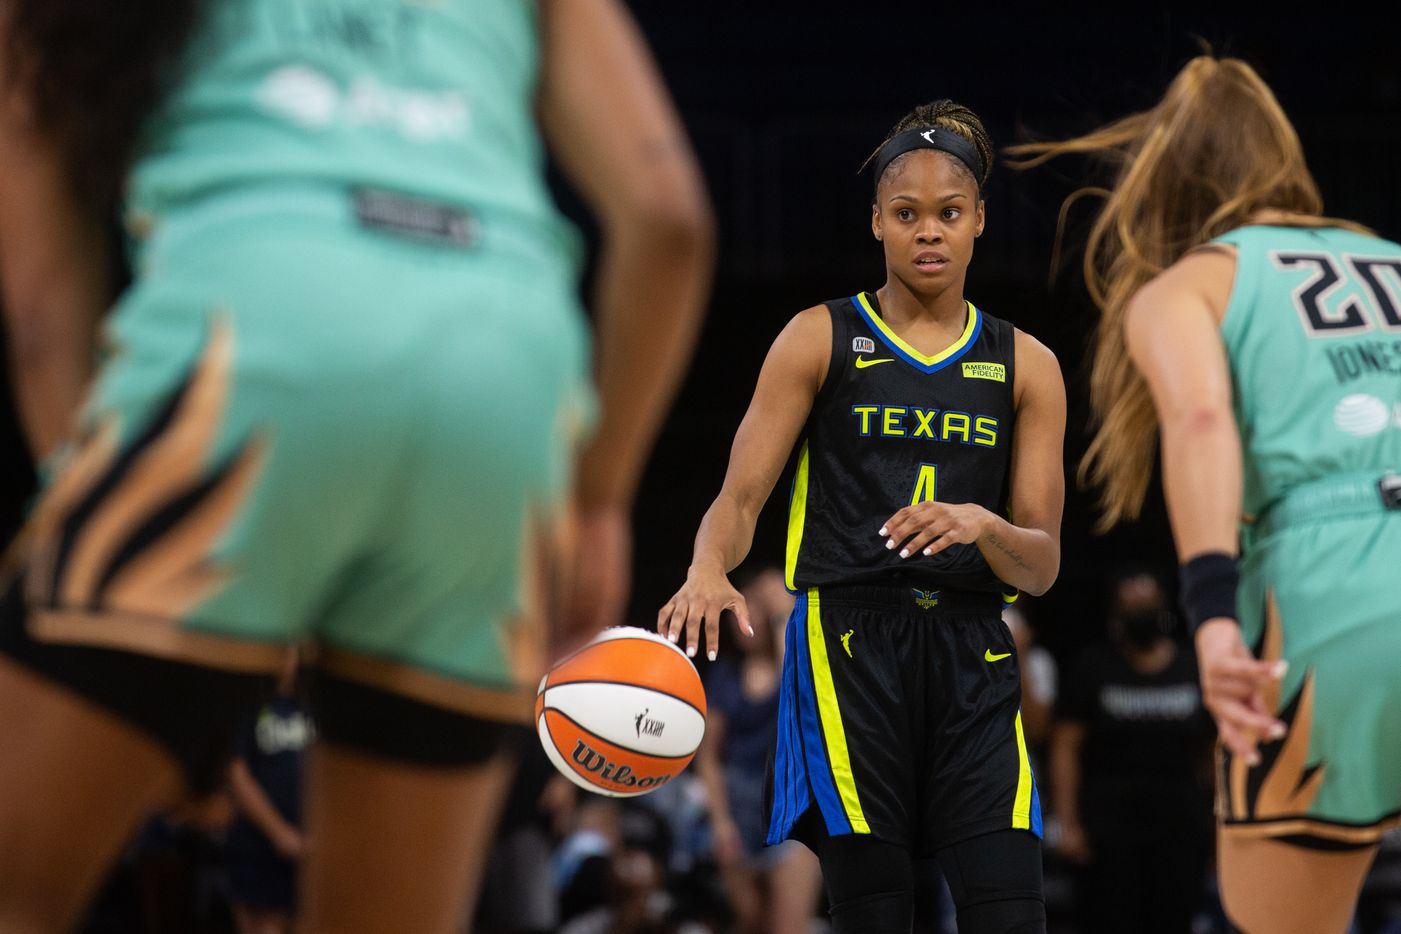 Dallas Wings guard Moriah Jefferson (4) looks for the next play during their game against New York Liberty at College Park Center in Arlington, TX on September 11, 2021.  (Shelby Tauber/Special Contributor)